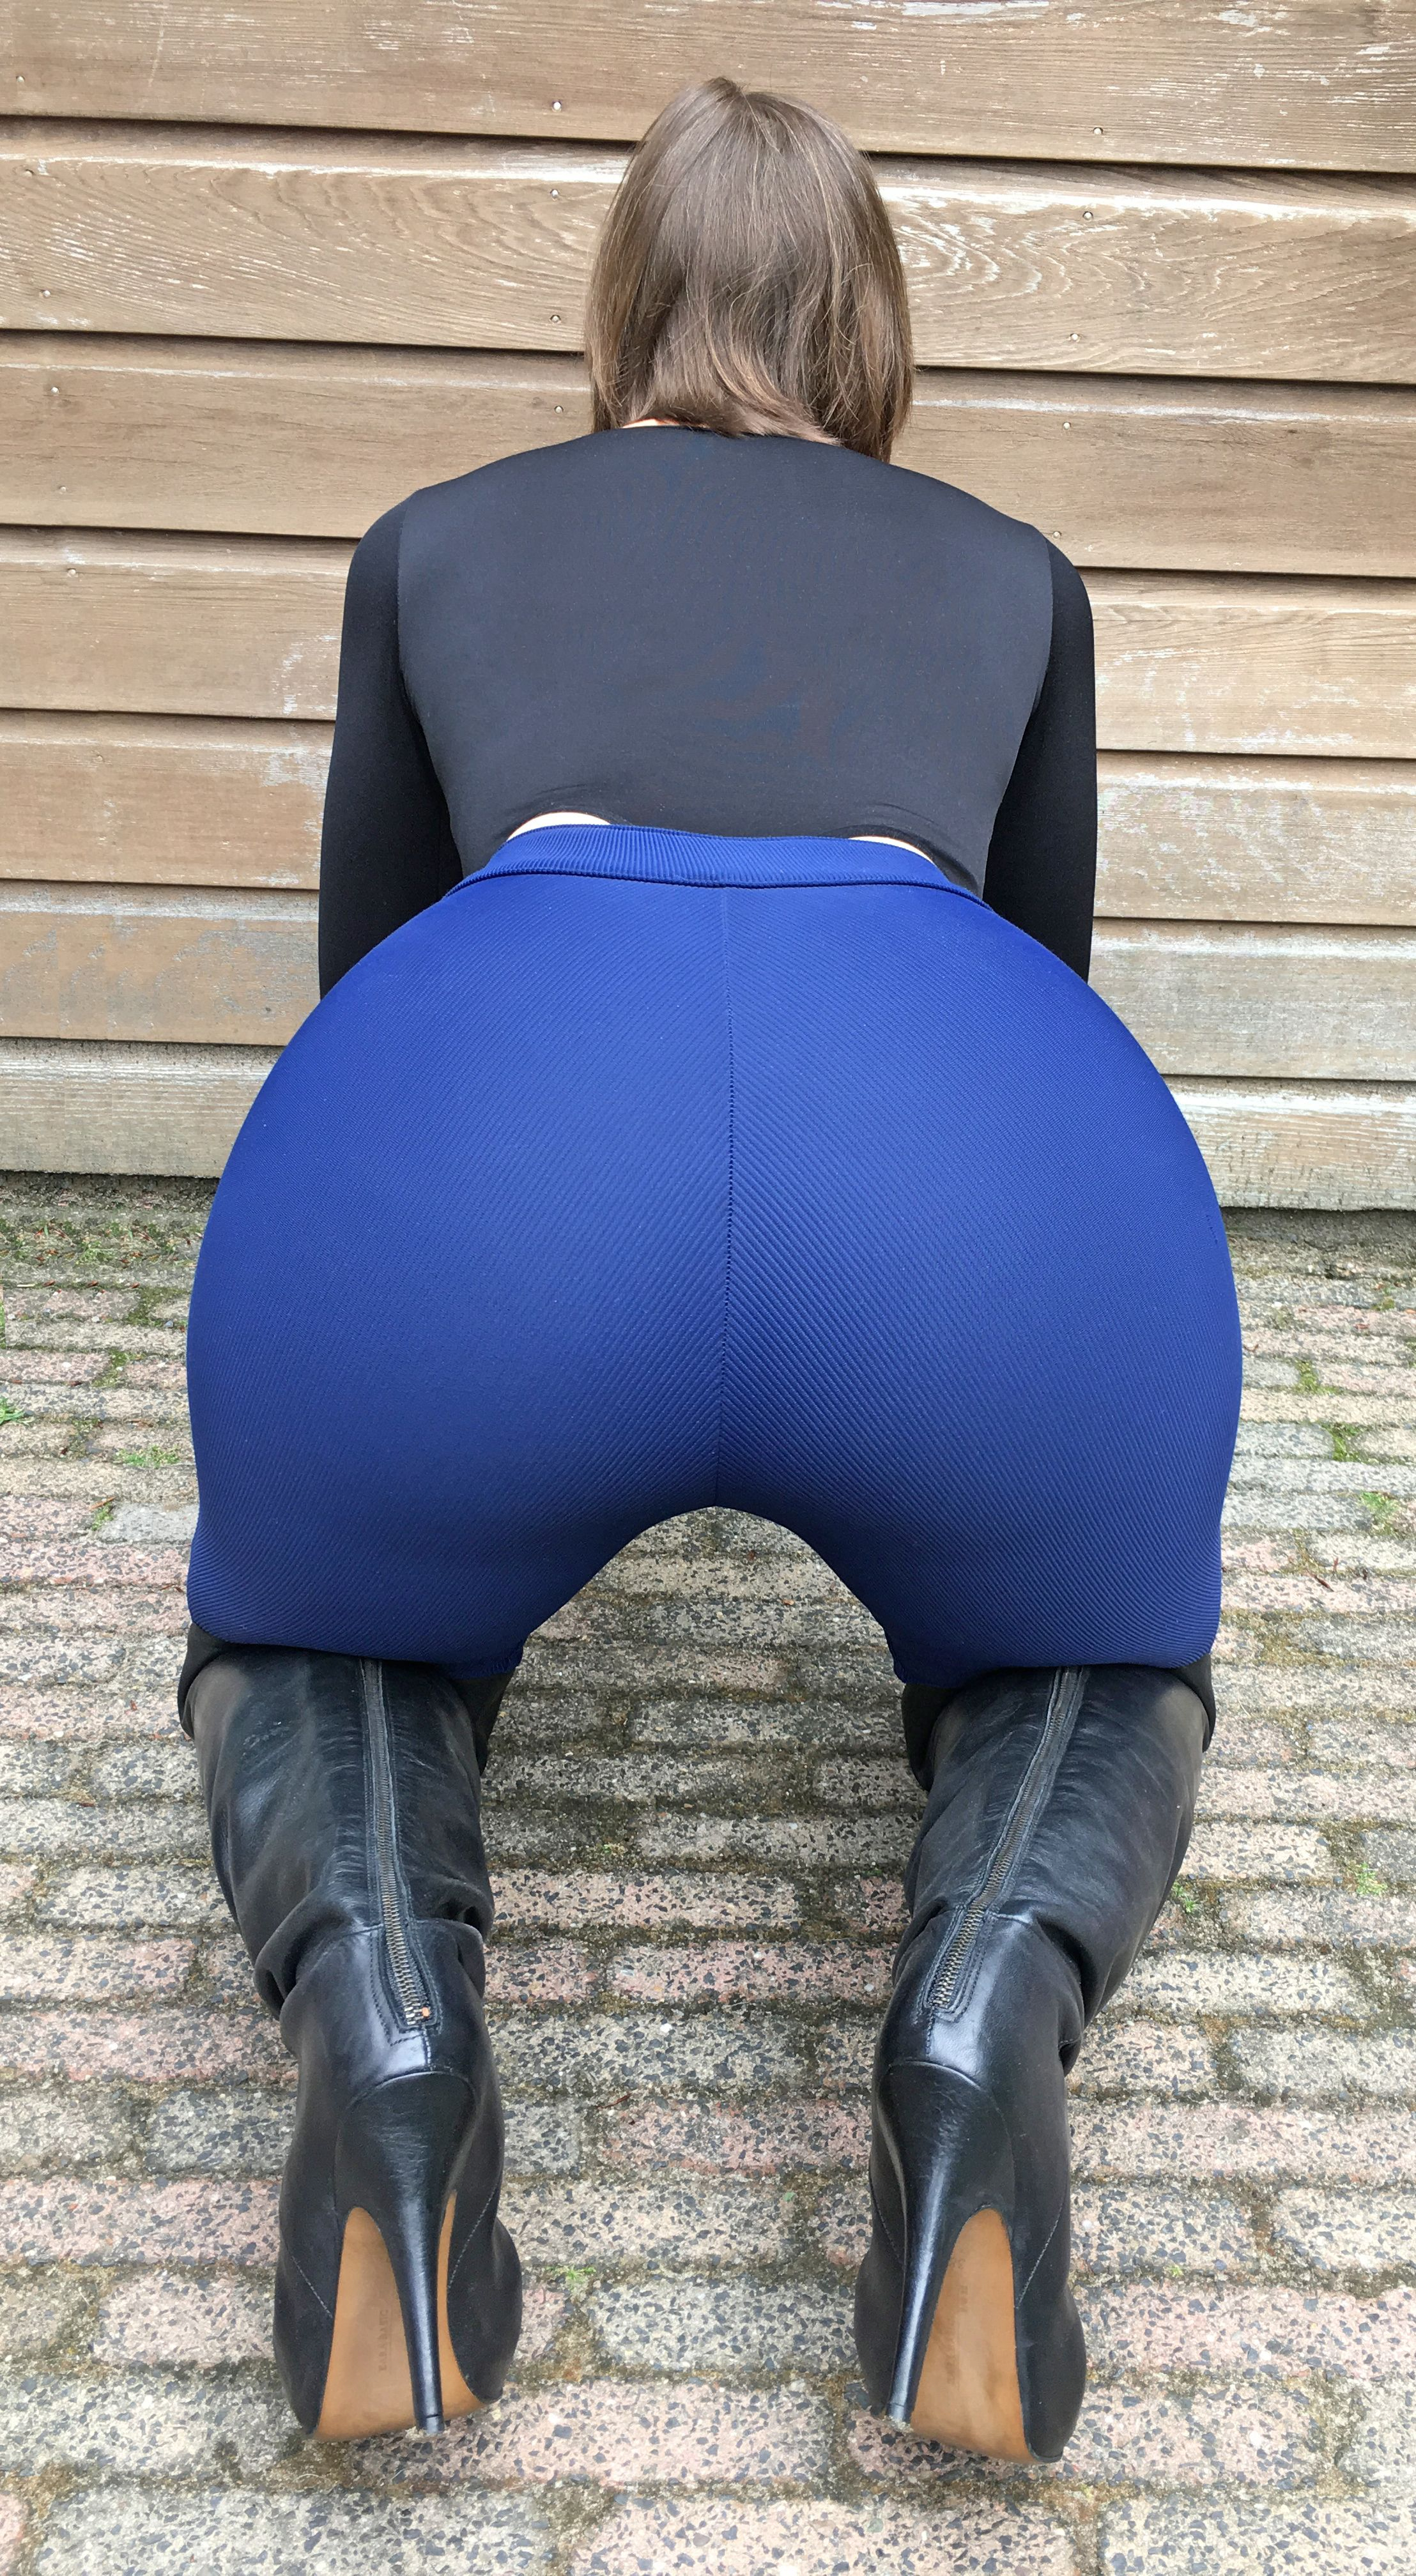 Stephanie Wolf - wearing my blue riding pants with a butt plug underneath